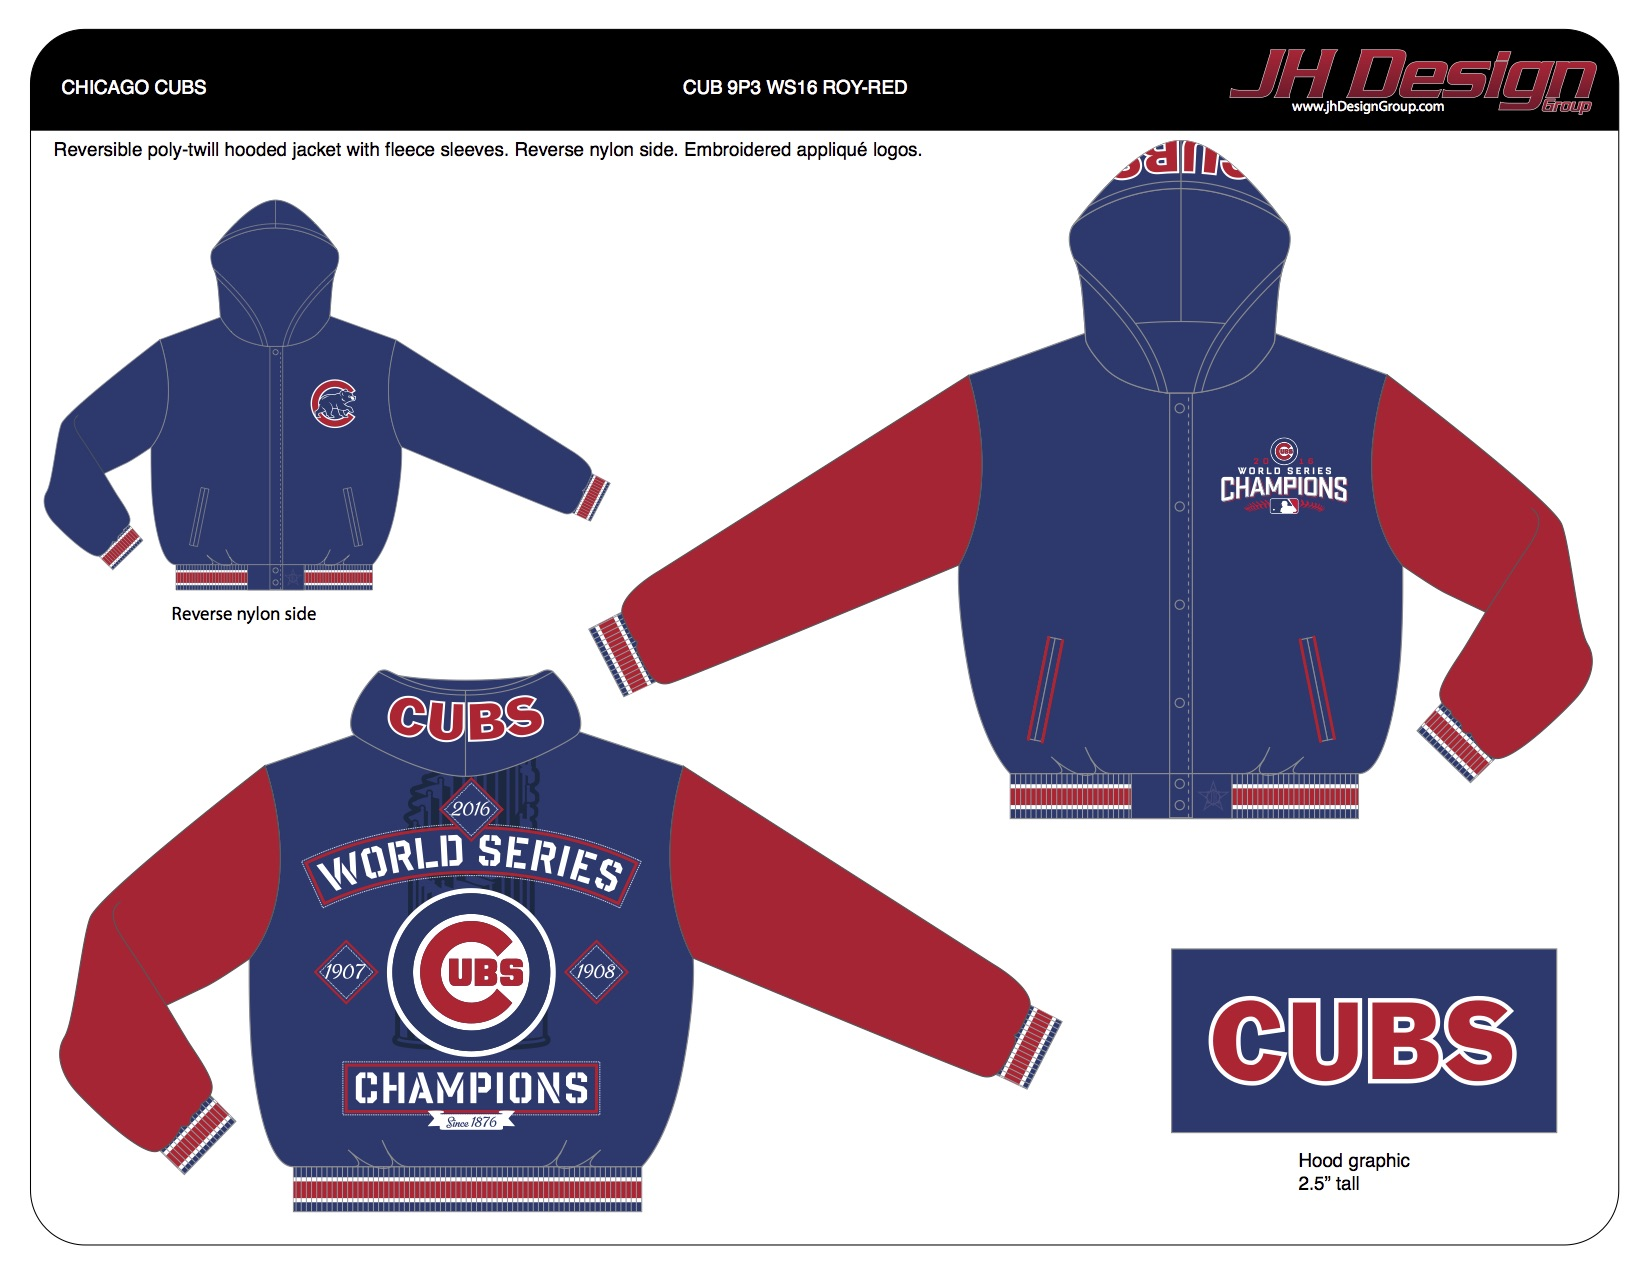 CUB 9P3 WS16 ROY-RED